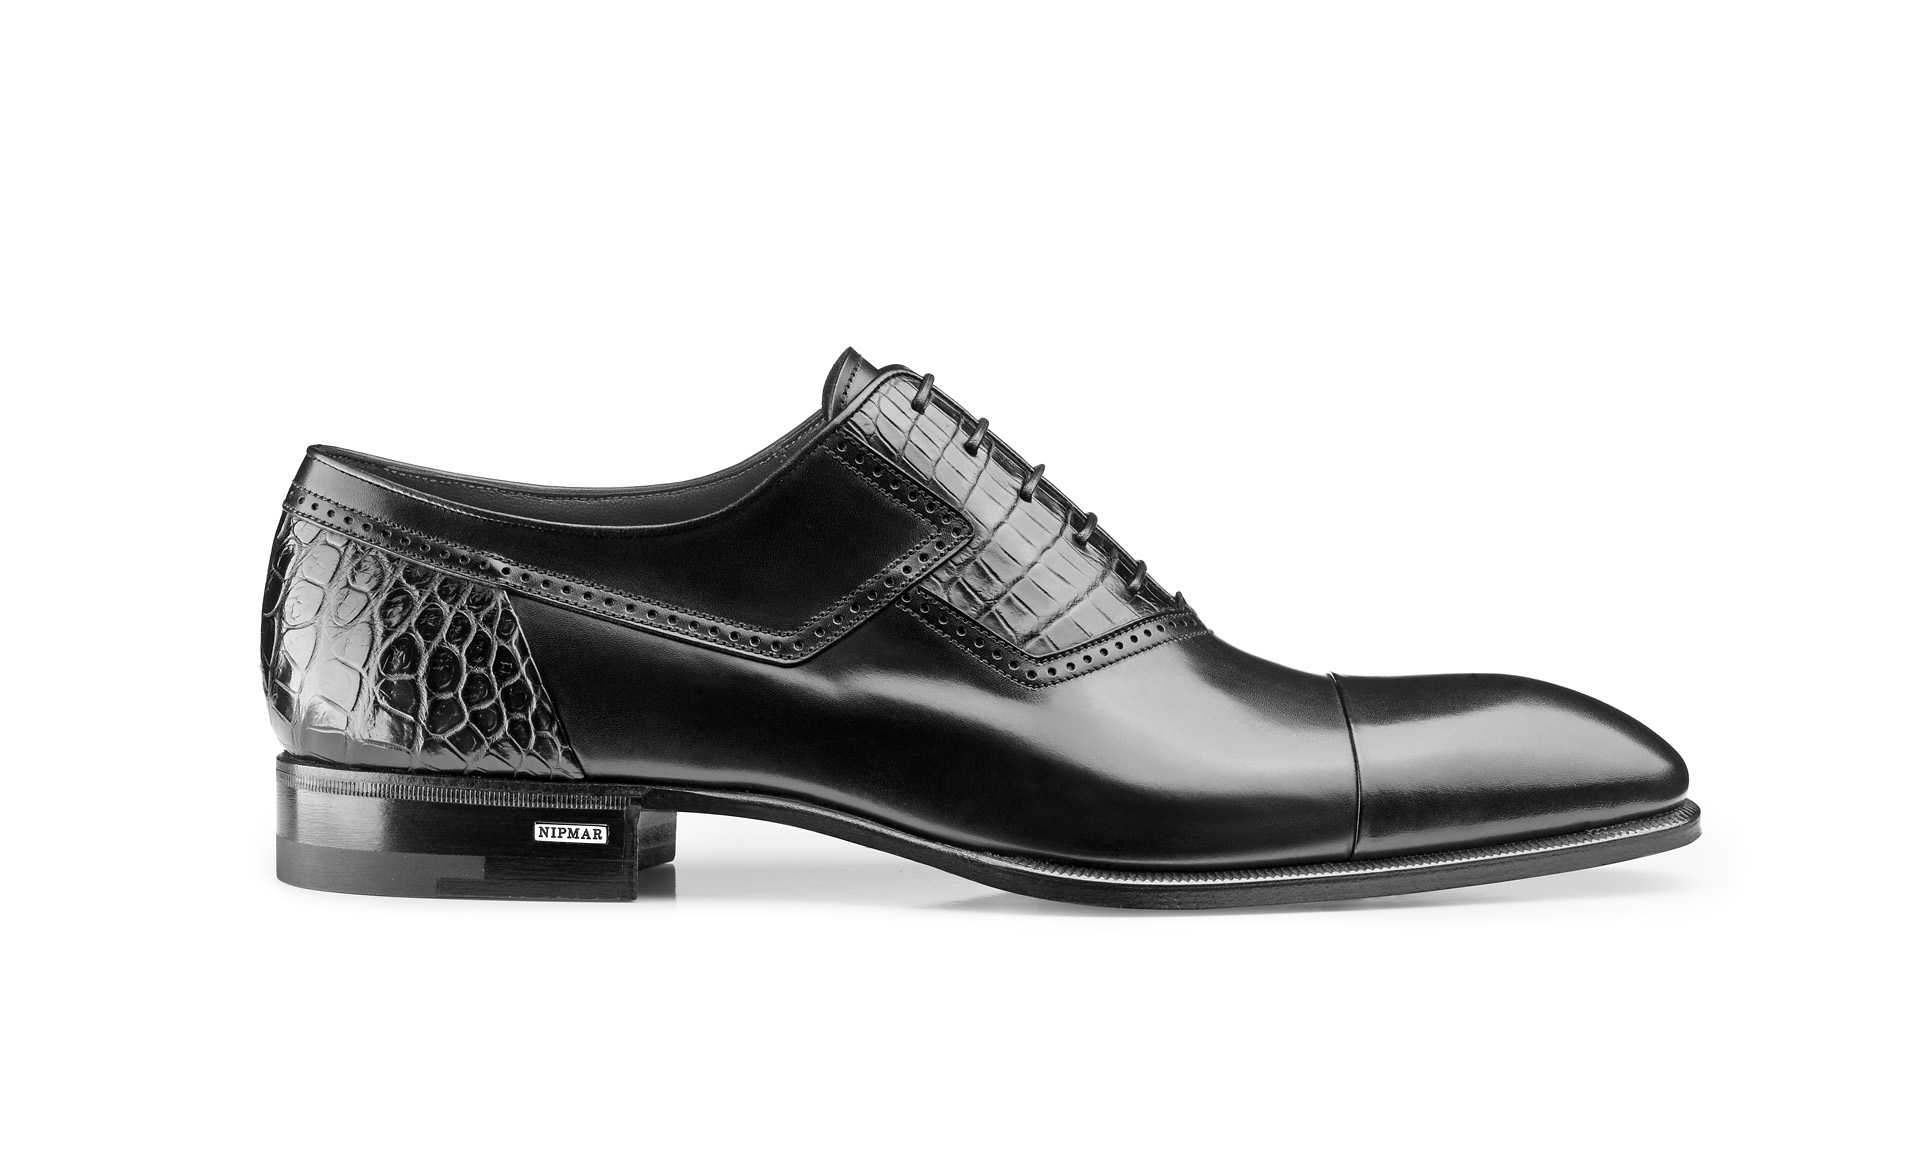 Croco and Calfskin Oxfords